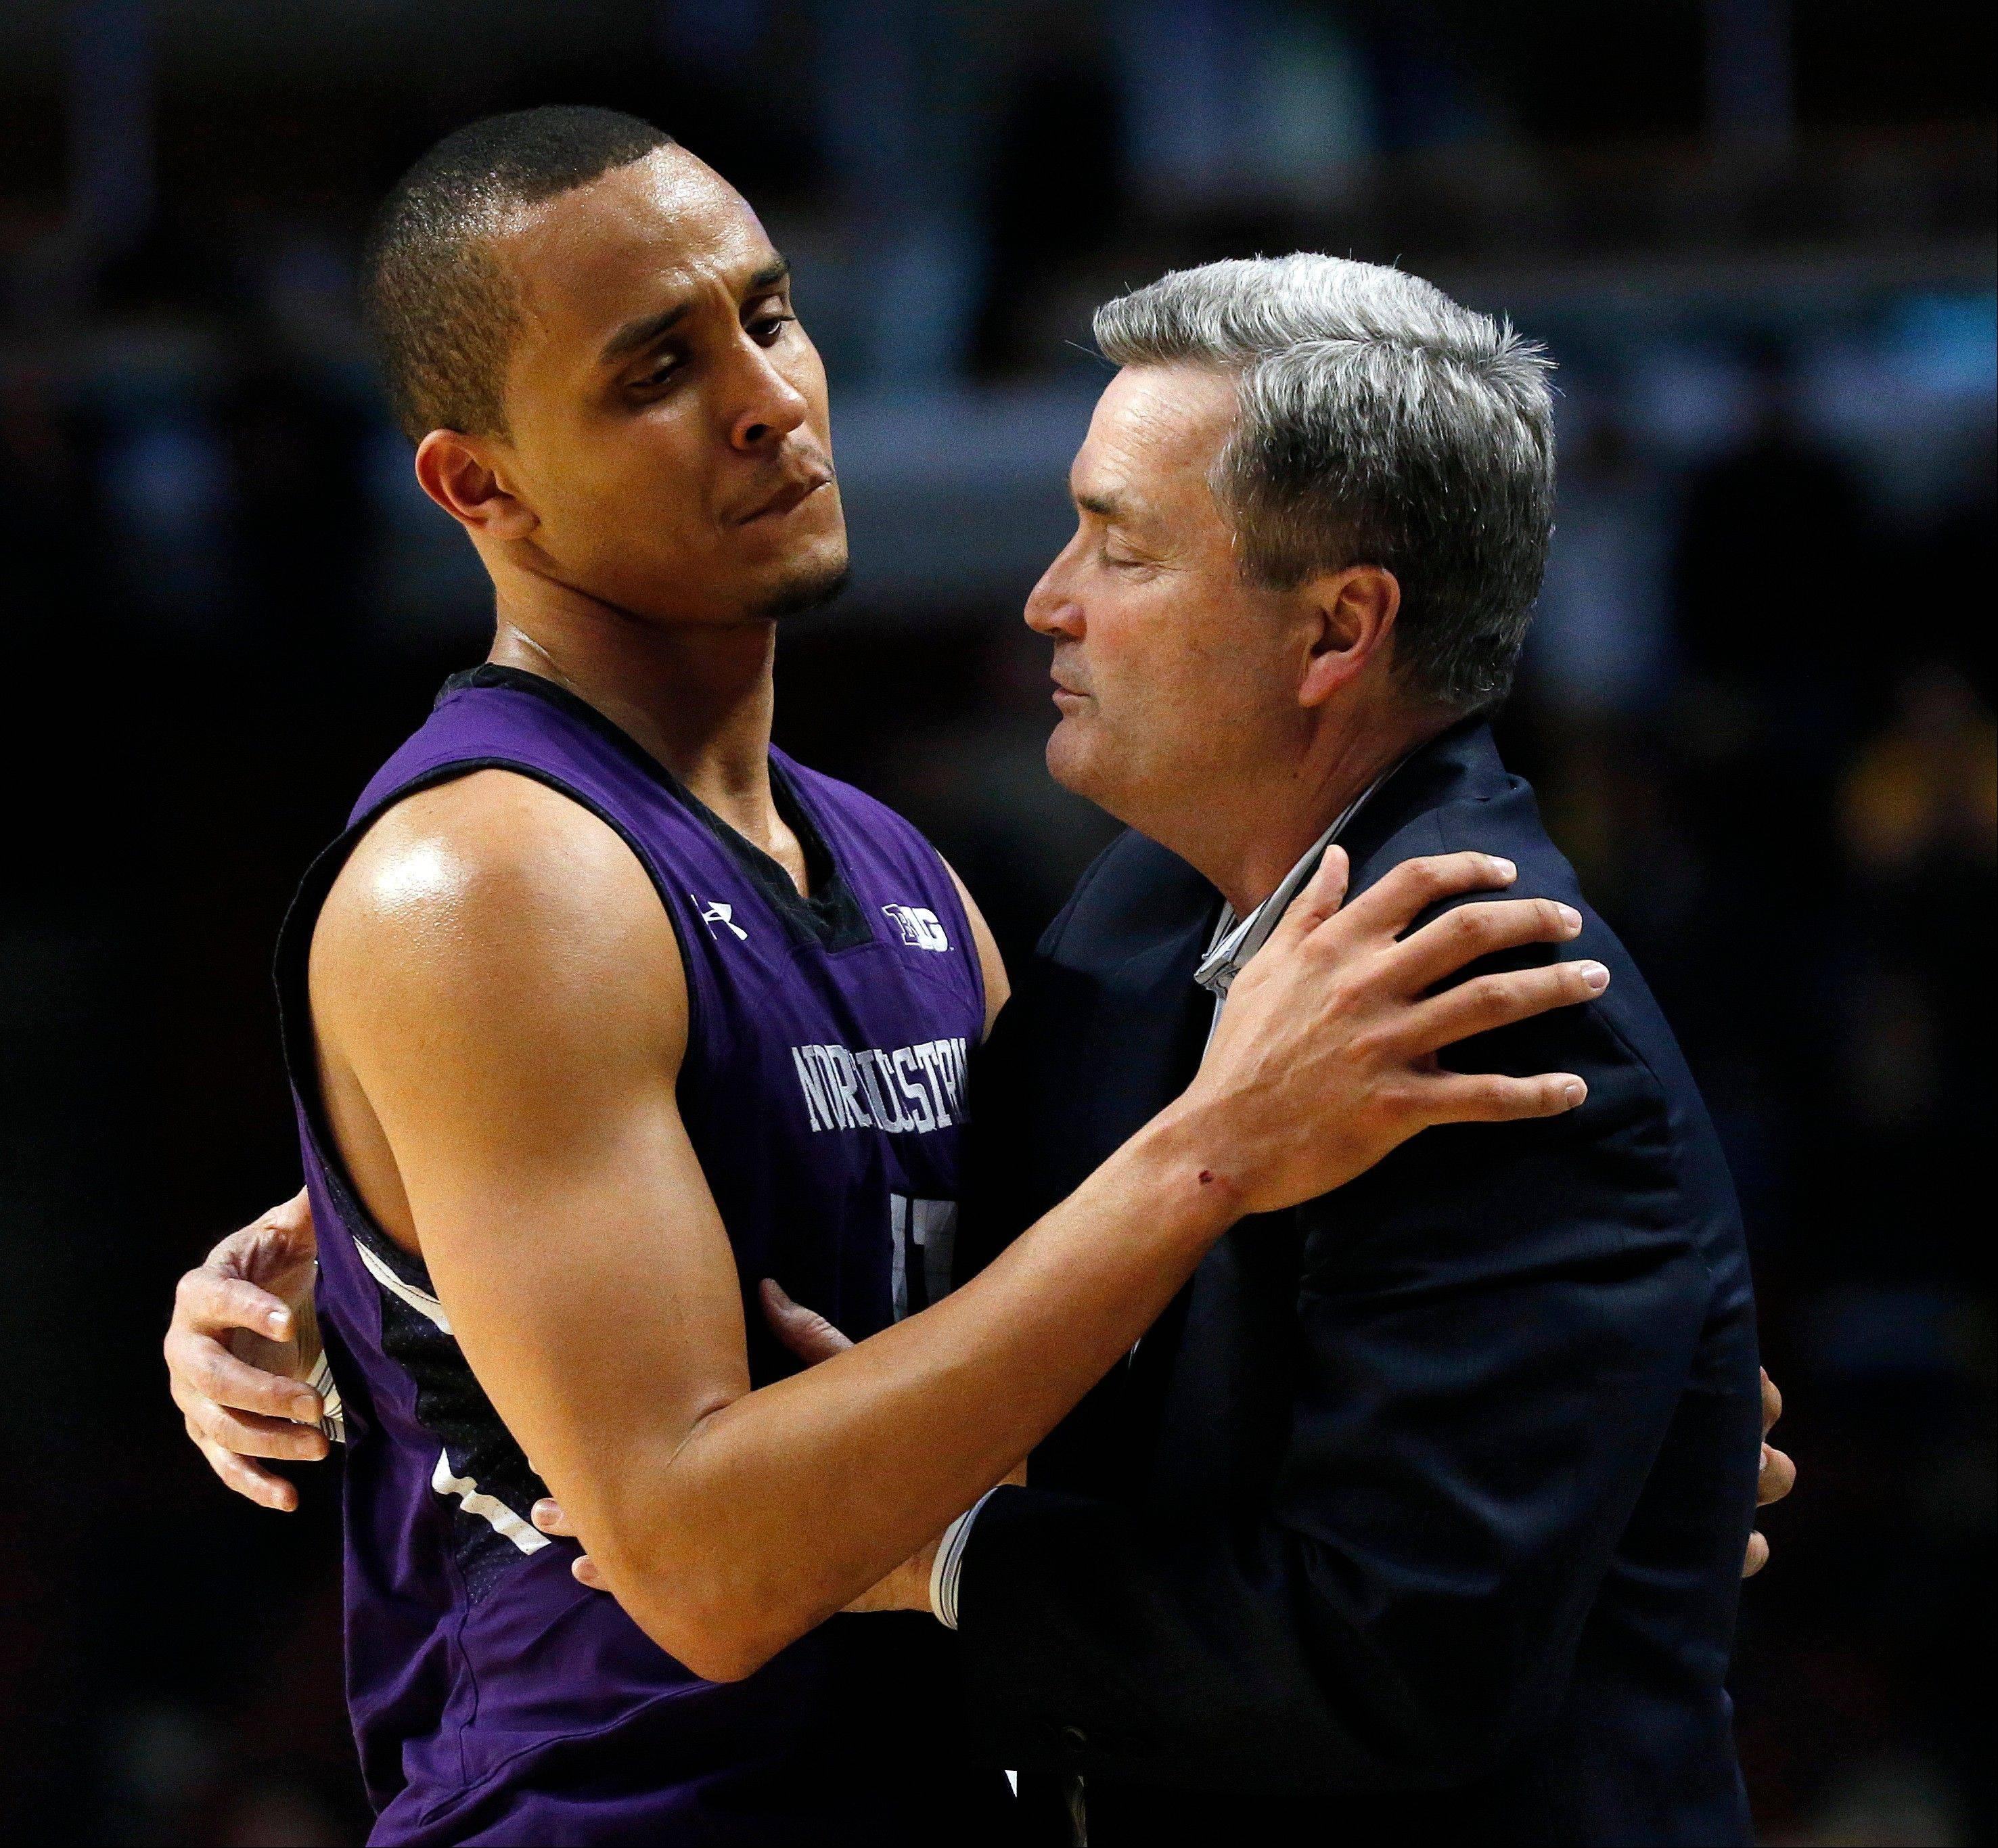 Was Northwestern loss swan song for Carmody?